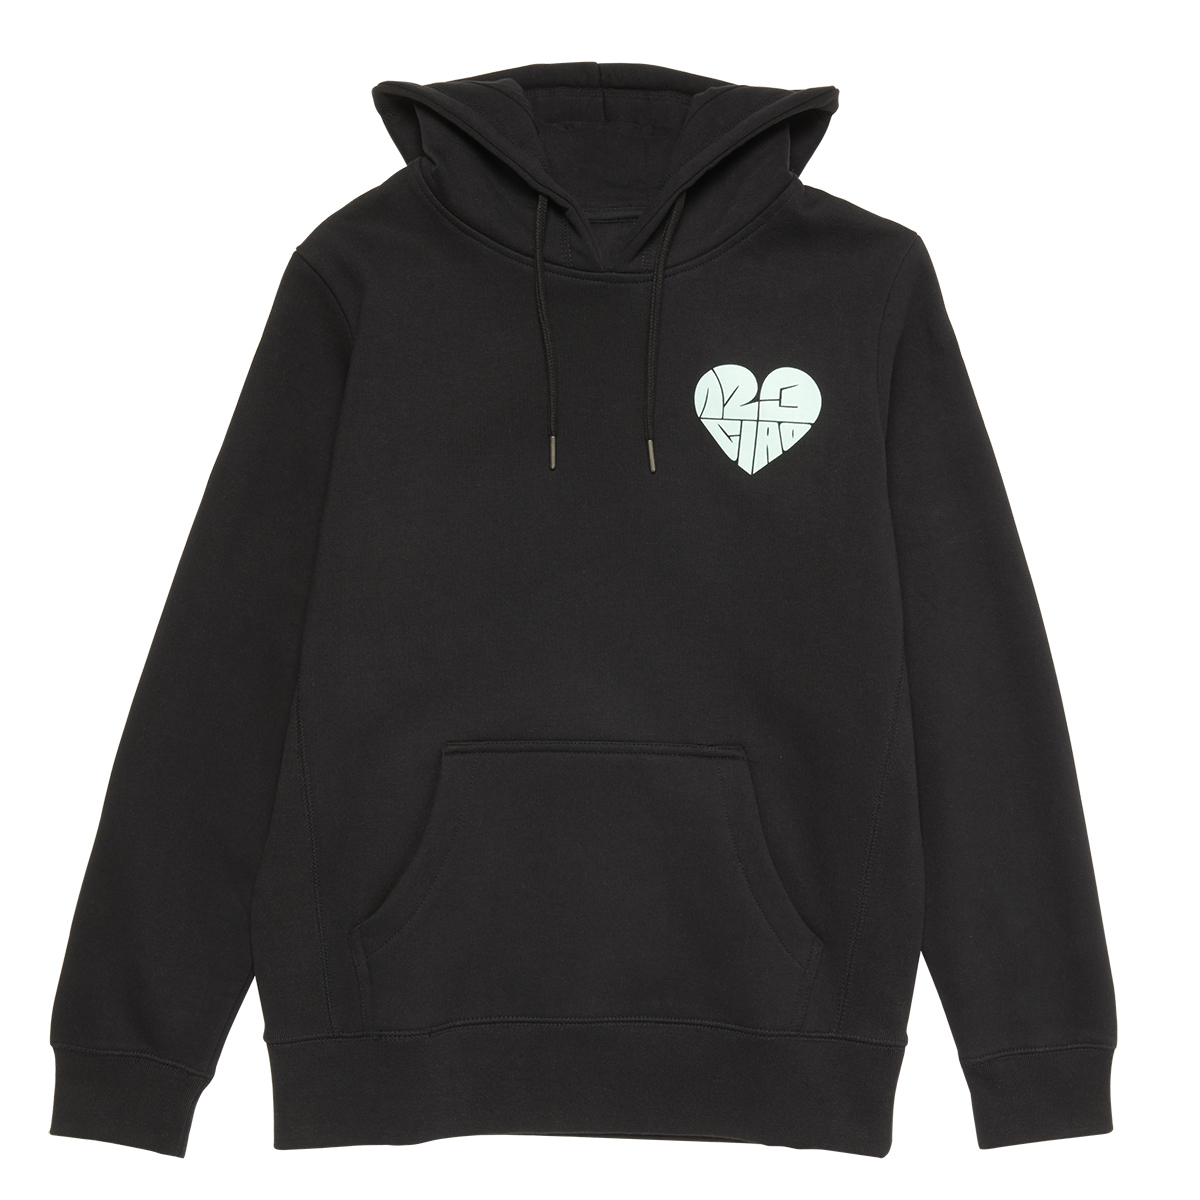 1,2,3 Ciao Hoodie - Black with Mint Logo